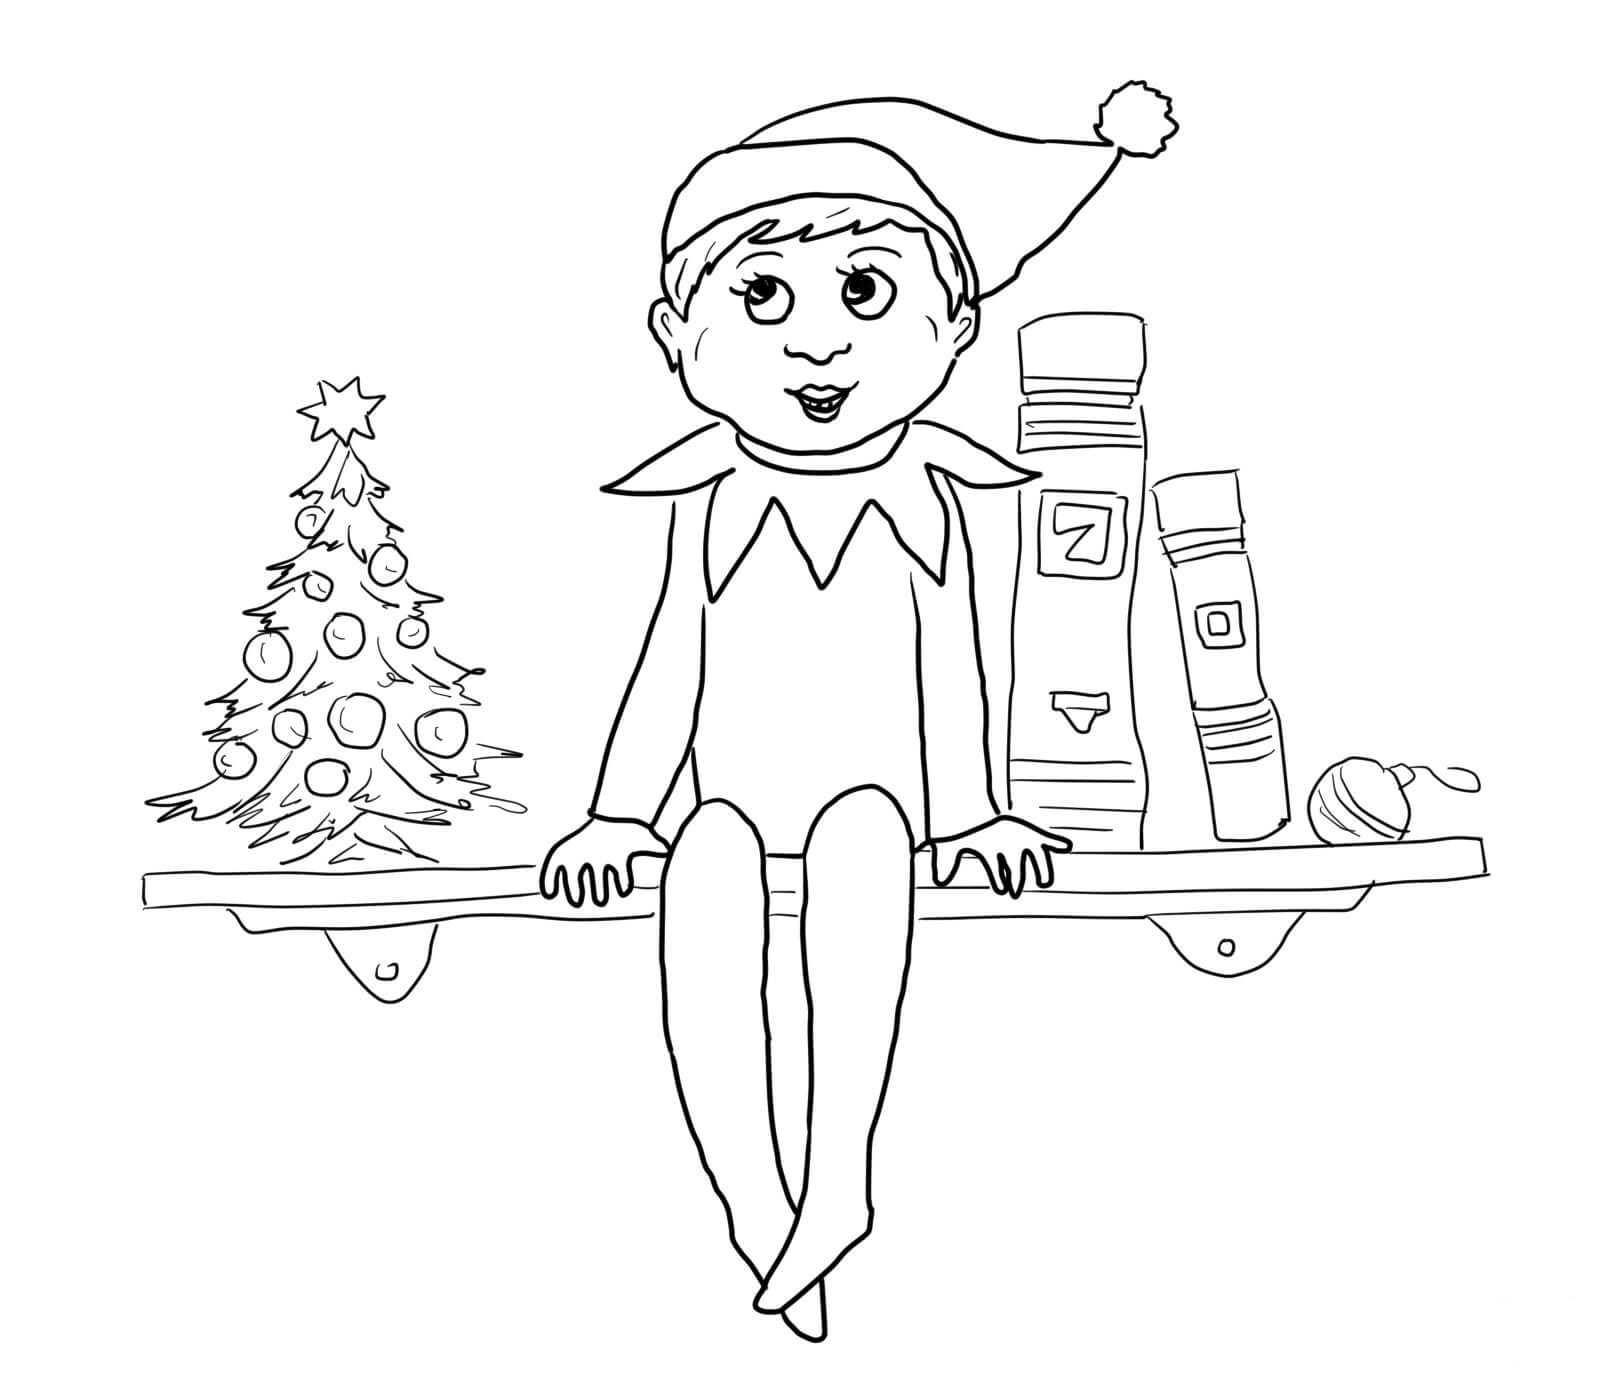 elf on the shelf pictures to color 30 free printable elf on the shelf coloring pages shelf pictures elf color on to the